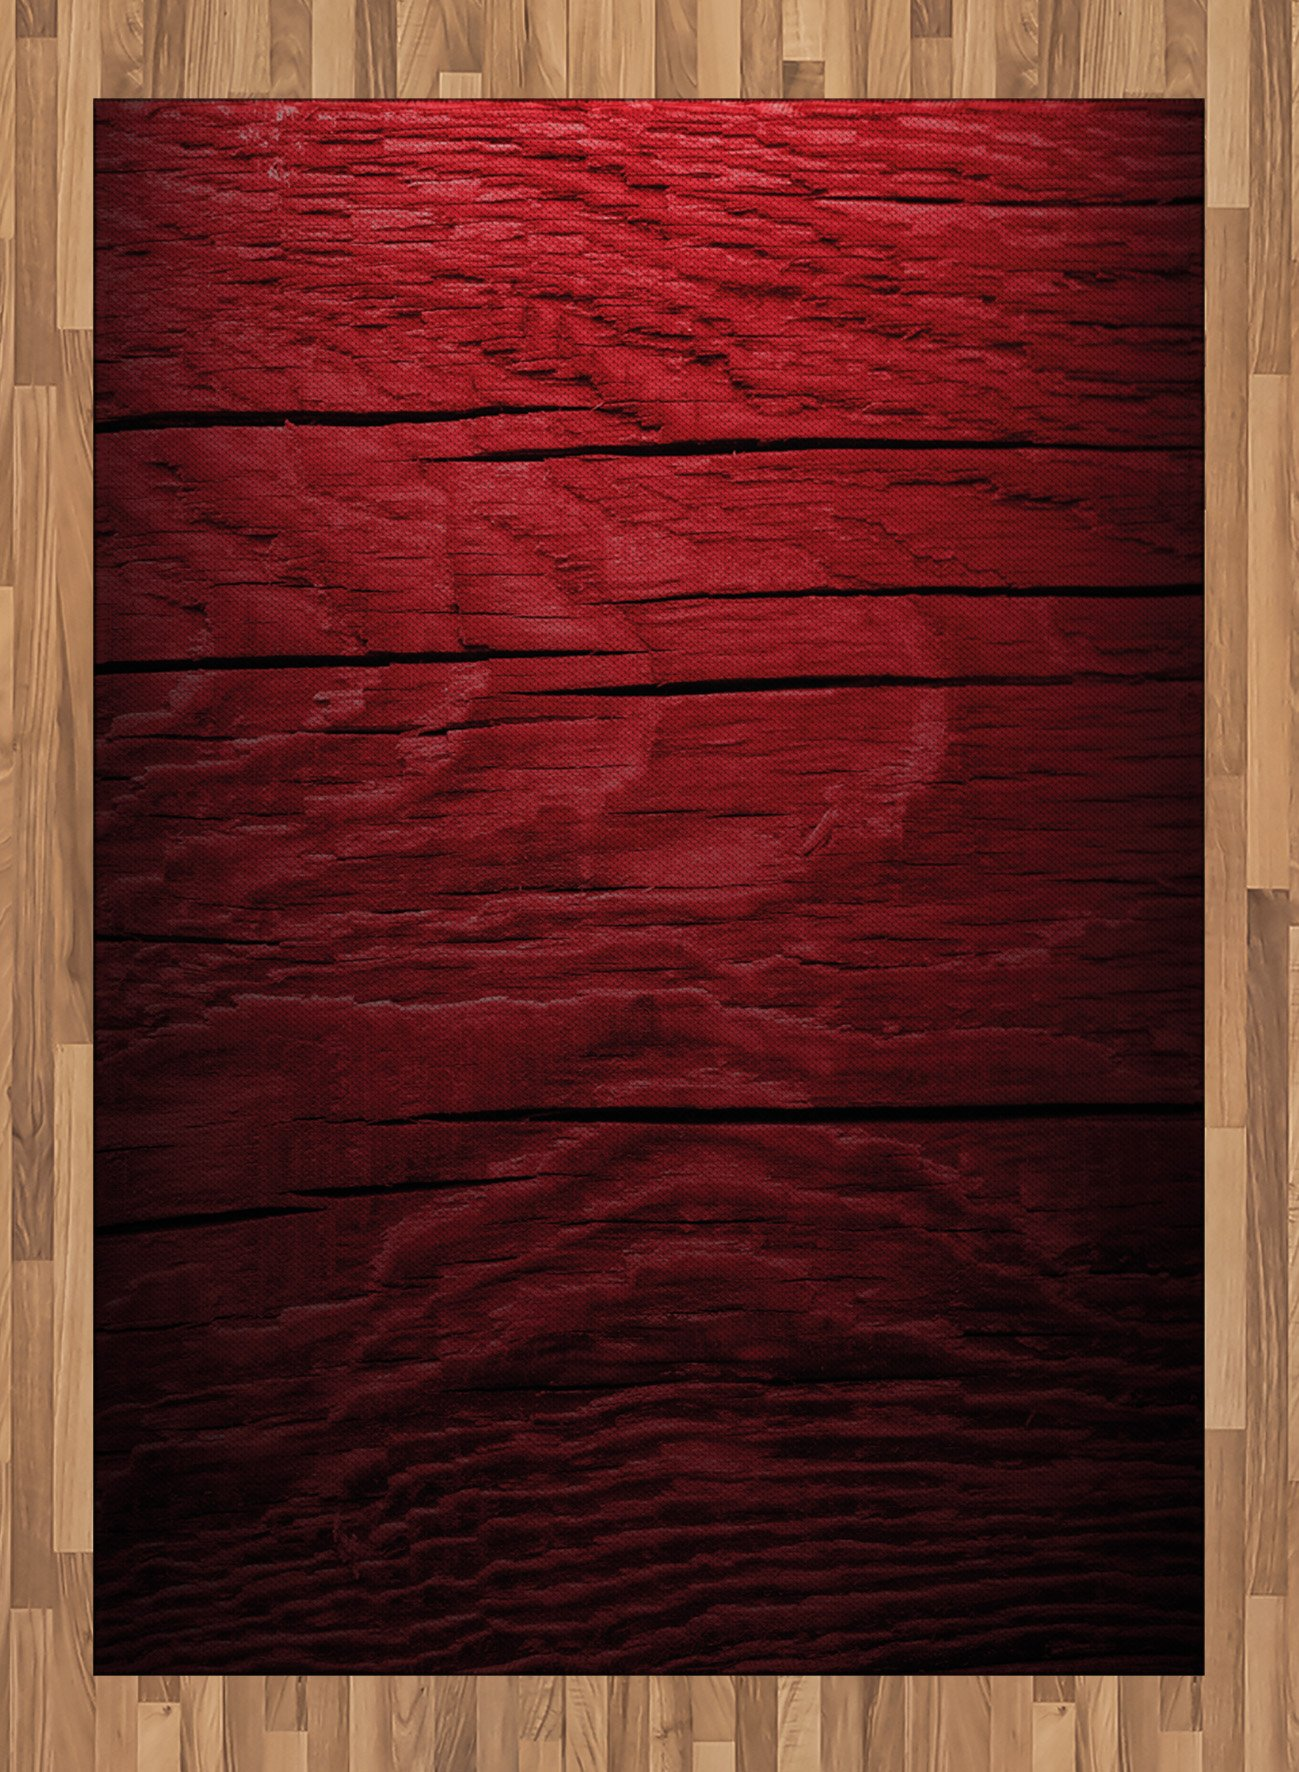 Maroon Area Rug by Lunarable, Wooden Planks Timber Board Ancient Tree Texture Image Rustic Country Life Theme, Flat Woven Accent Rug for Living Room Bedroom Dining Room, 5.2 x 7.5 FT, Maroon Black